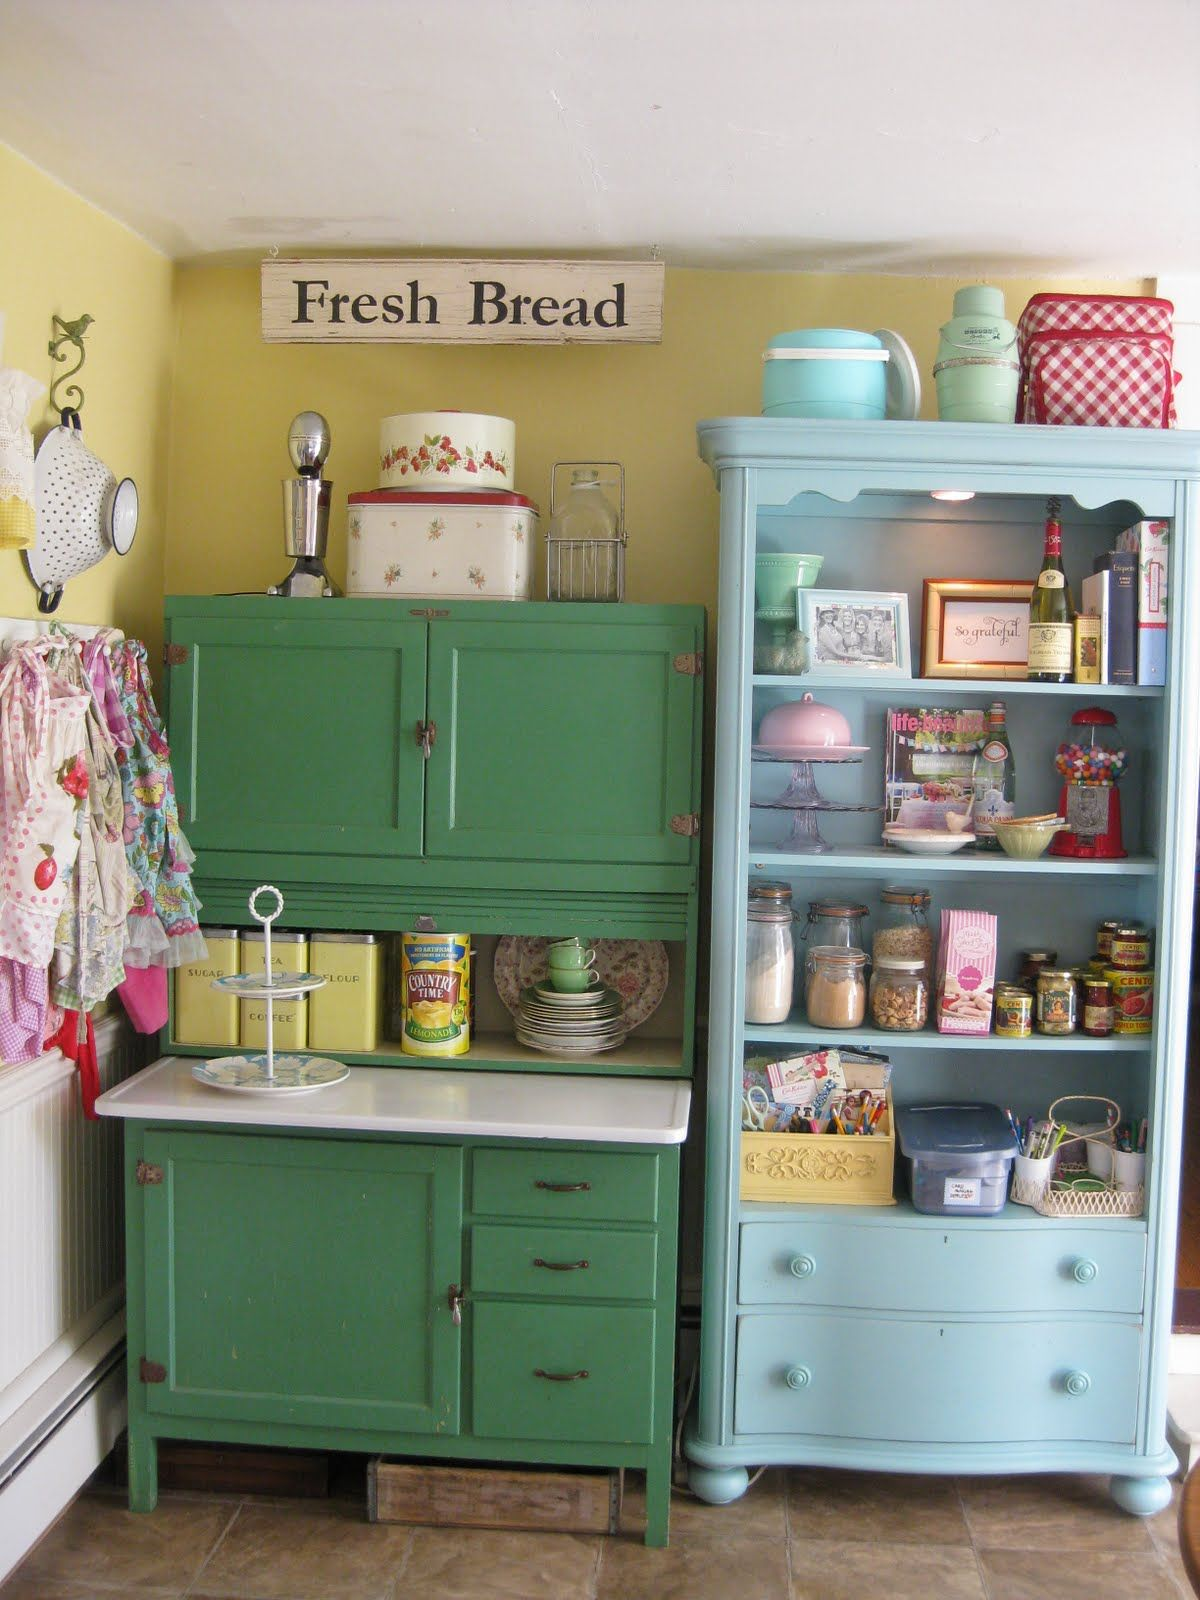 vintage kitchen lighting Scenic Green And Blue Vintage Kitchen Cabinet Storage Also Open Racks As Inspiring Vintage Kitchen Furnishings